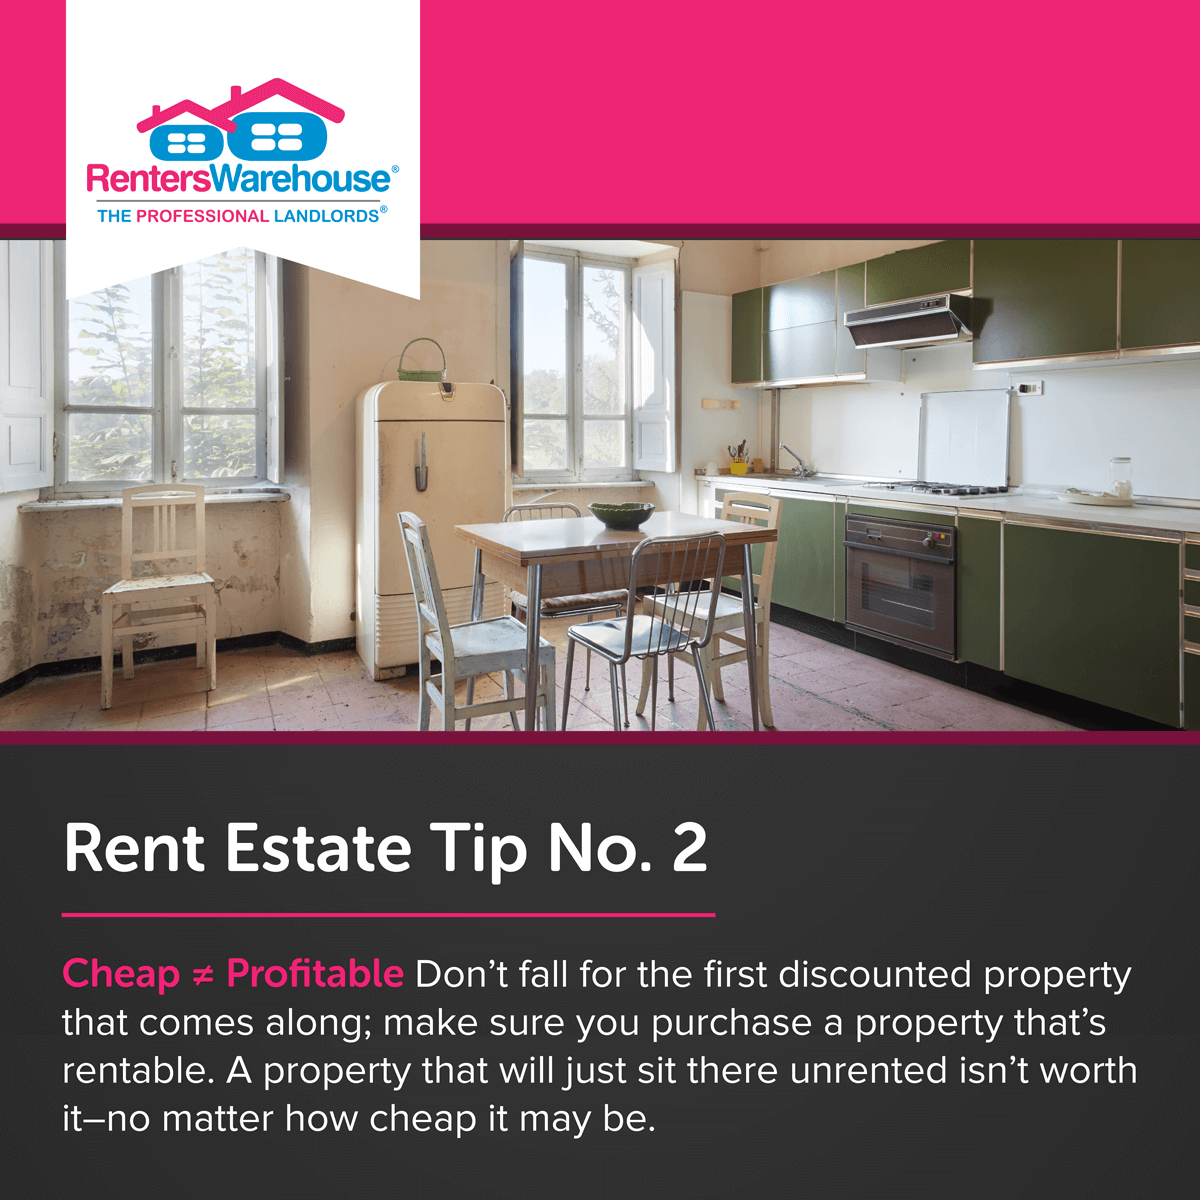 Image related to Rent Estate™ Tip No. 2 - Cheap ≠ Profitable